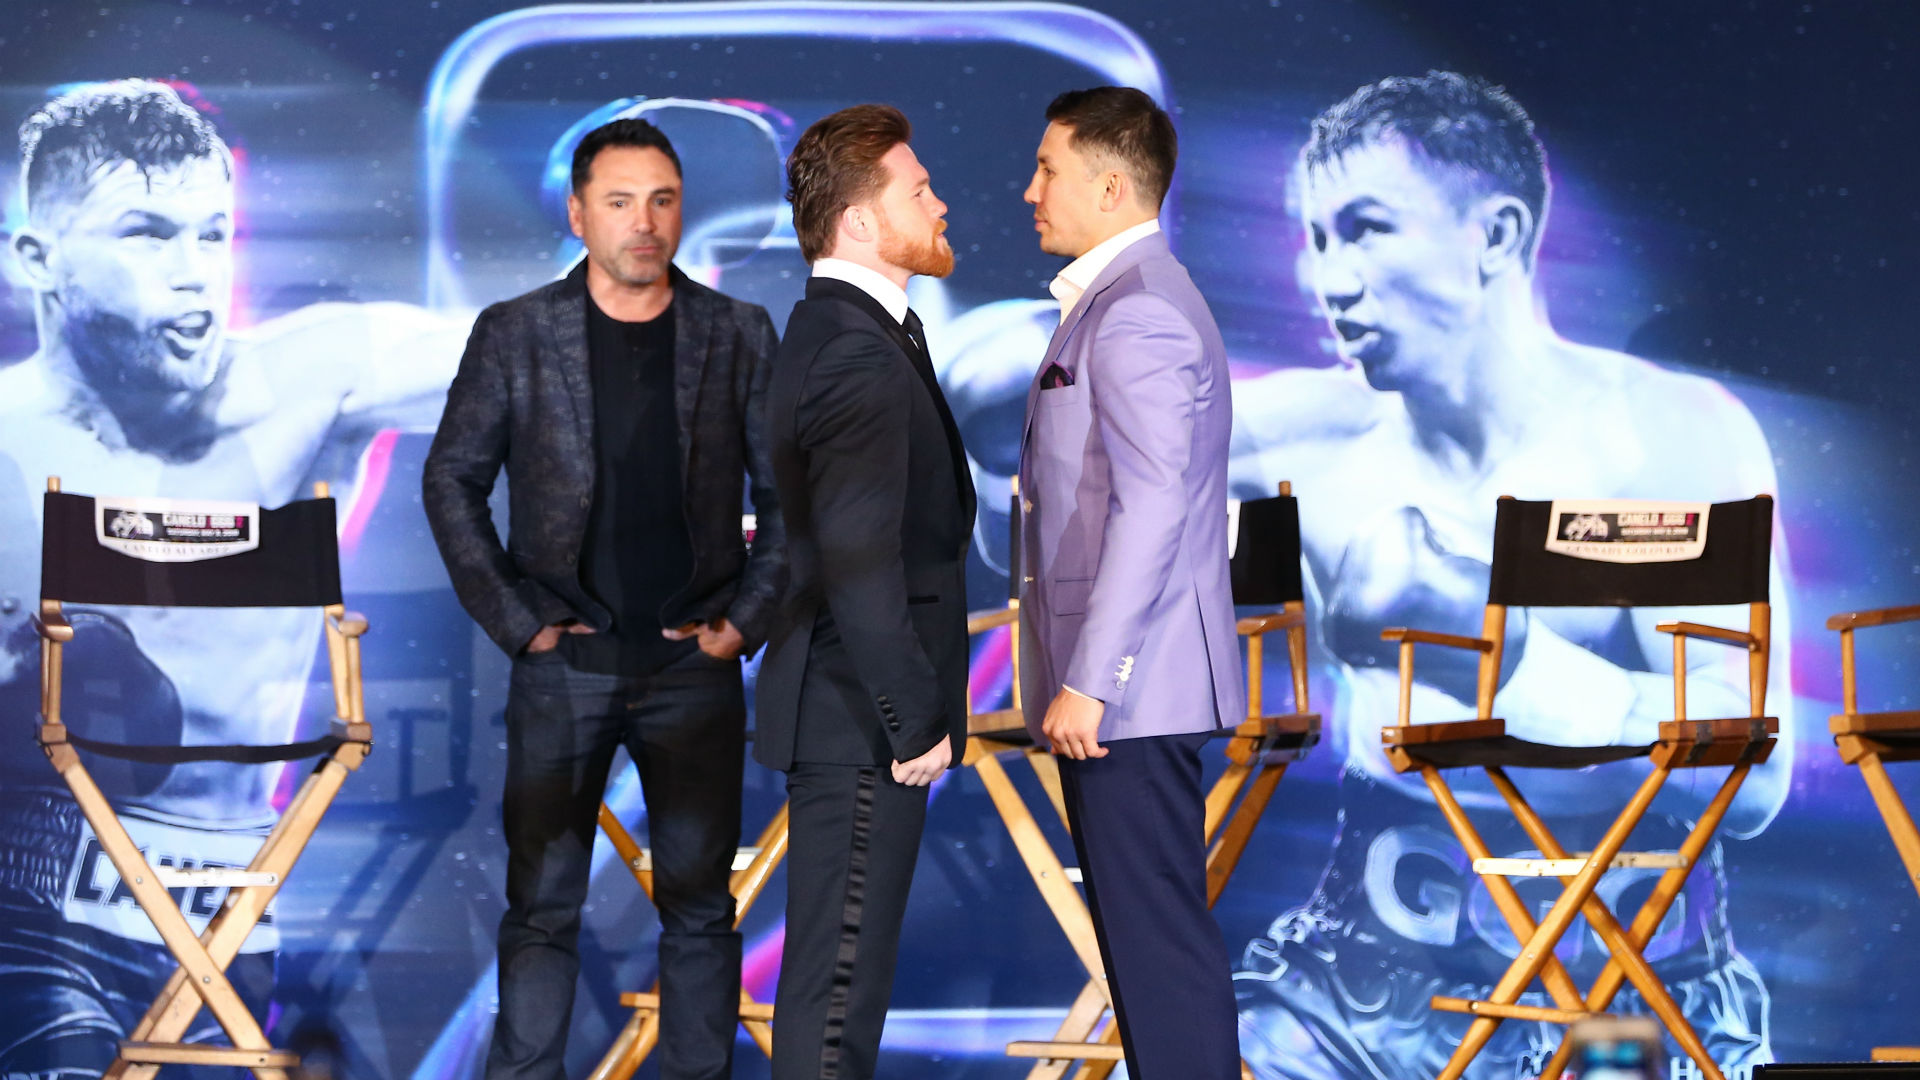 Former Golden Boy Promotion CEO rips Canelo-GGG promotion for lack of interaction